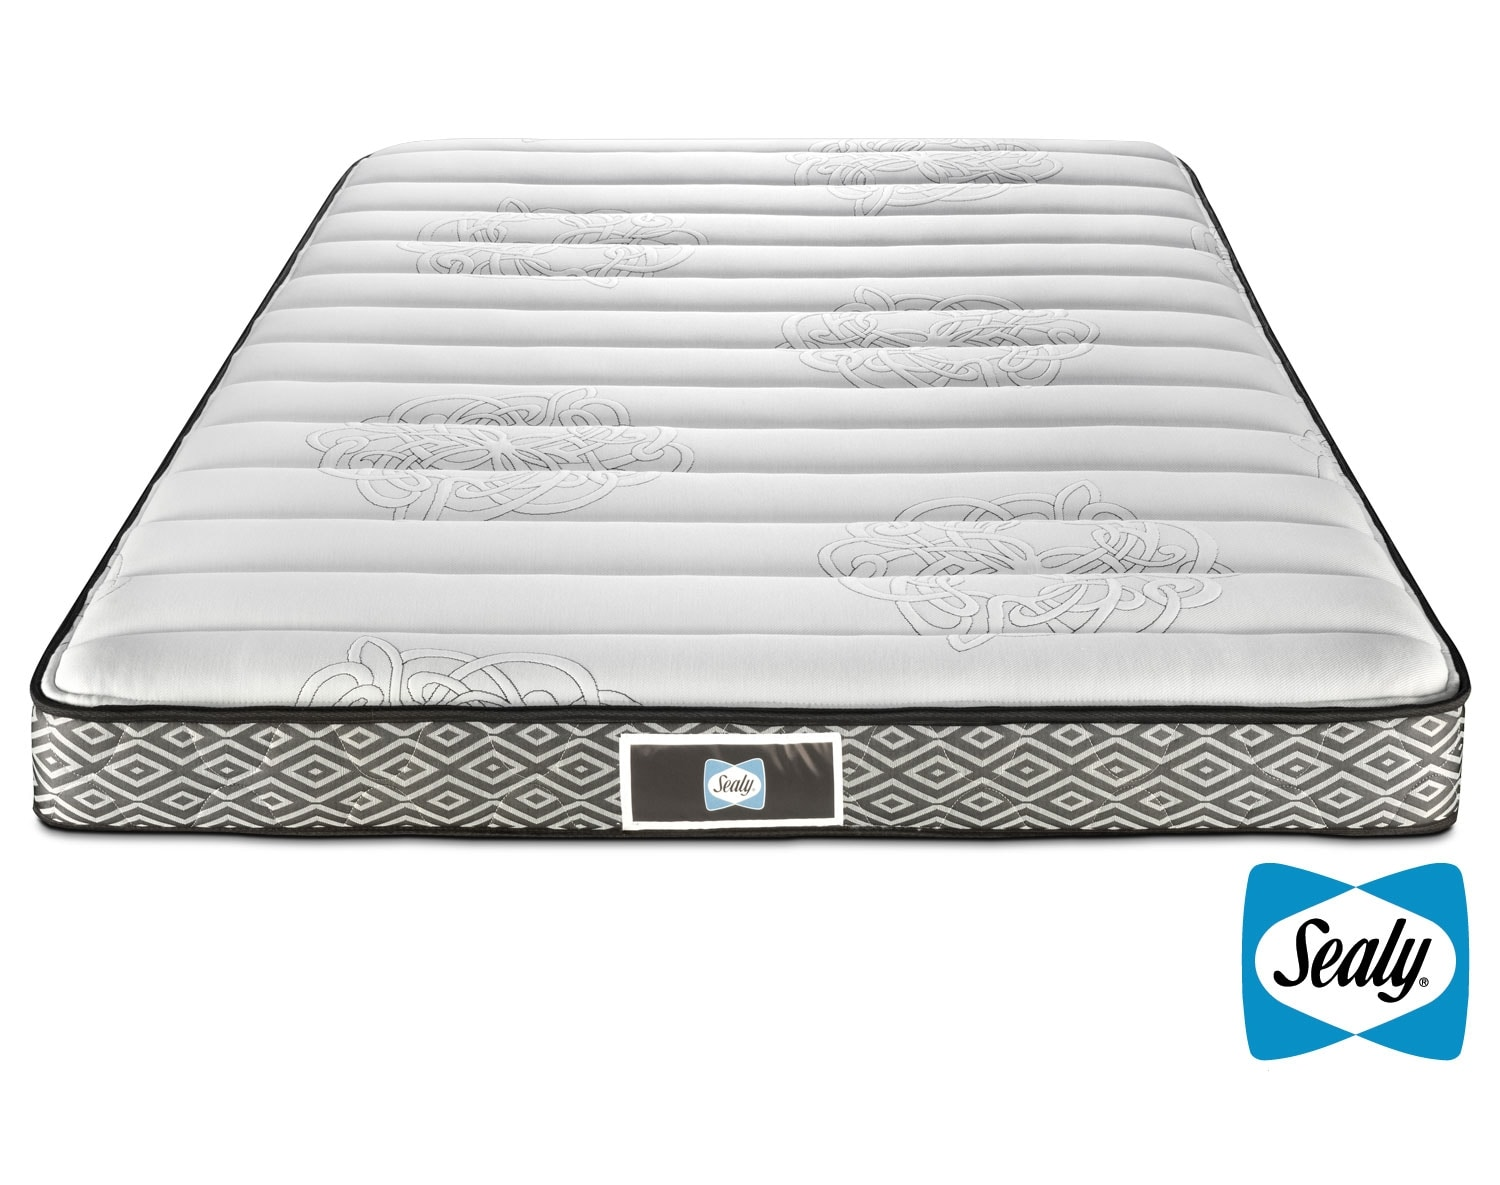 Sealy glacier queen mattress leon 39 s Queen size mattress price